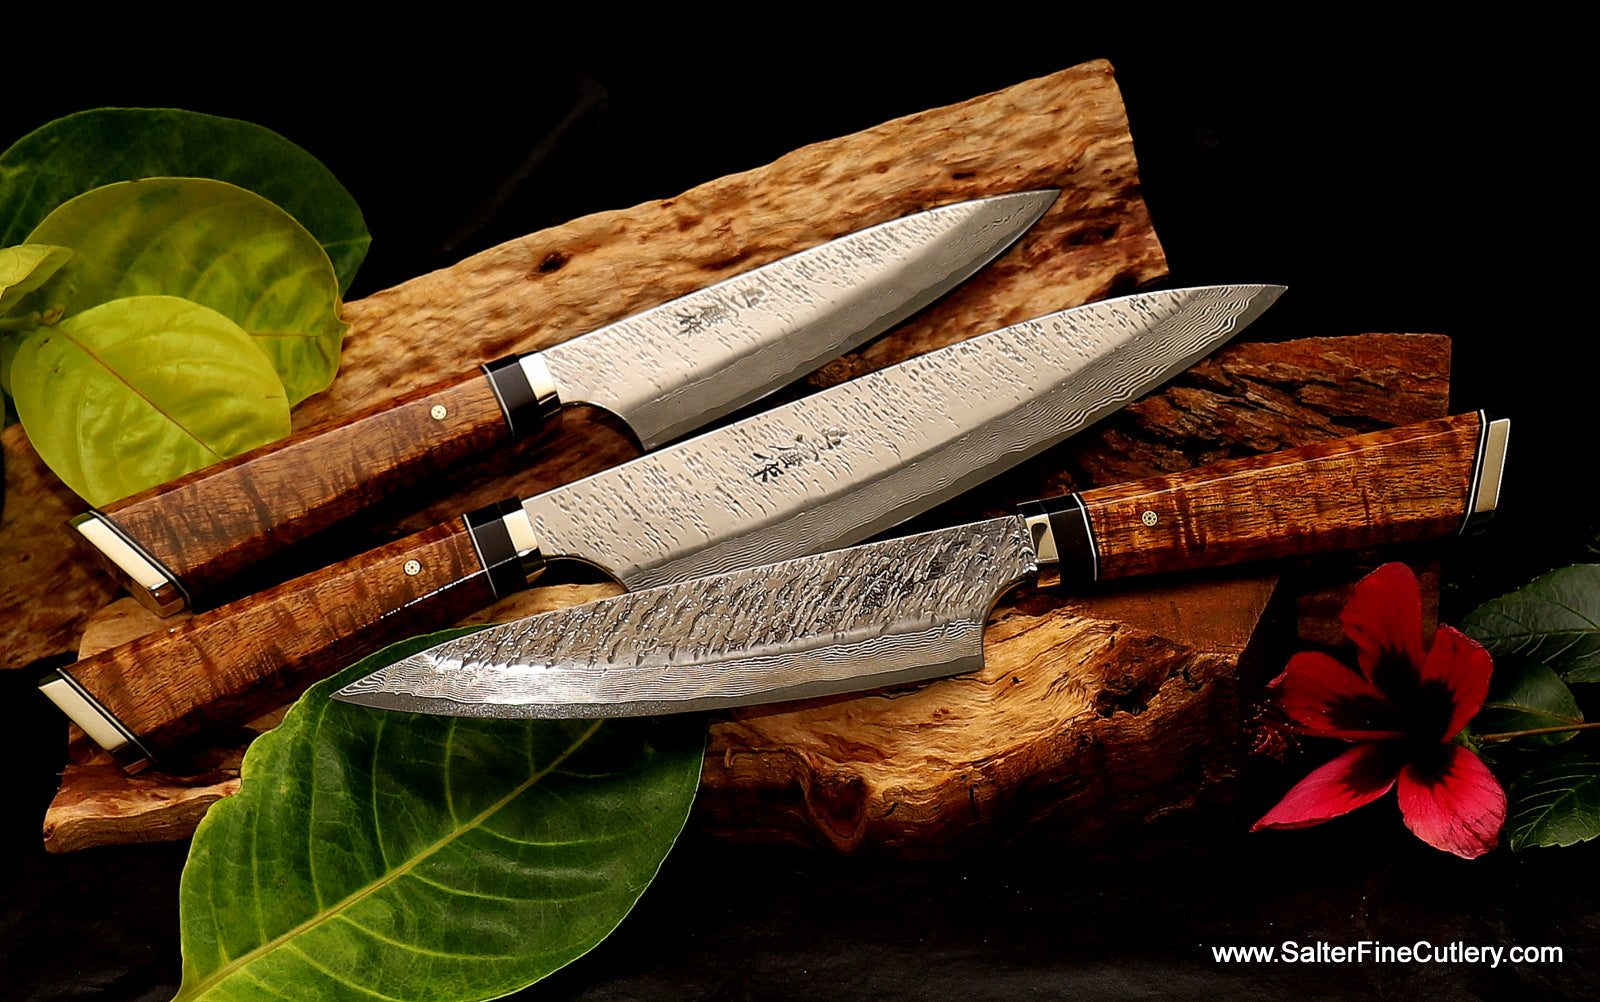 Raptor design chef knives featuring our hidden tang handles from Salter Fine Cutlery of Hawaii